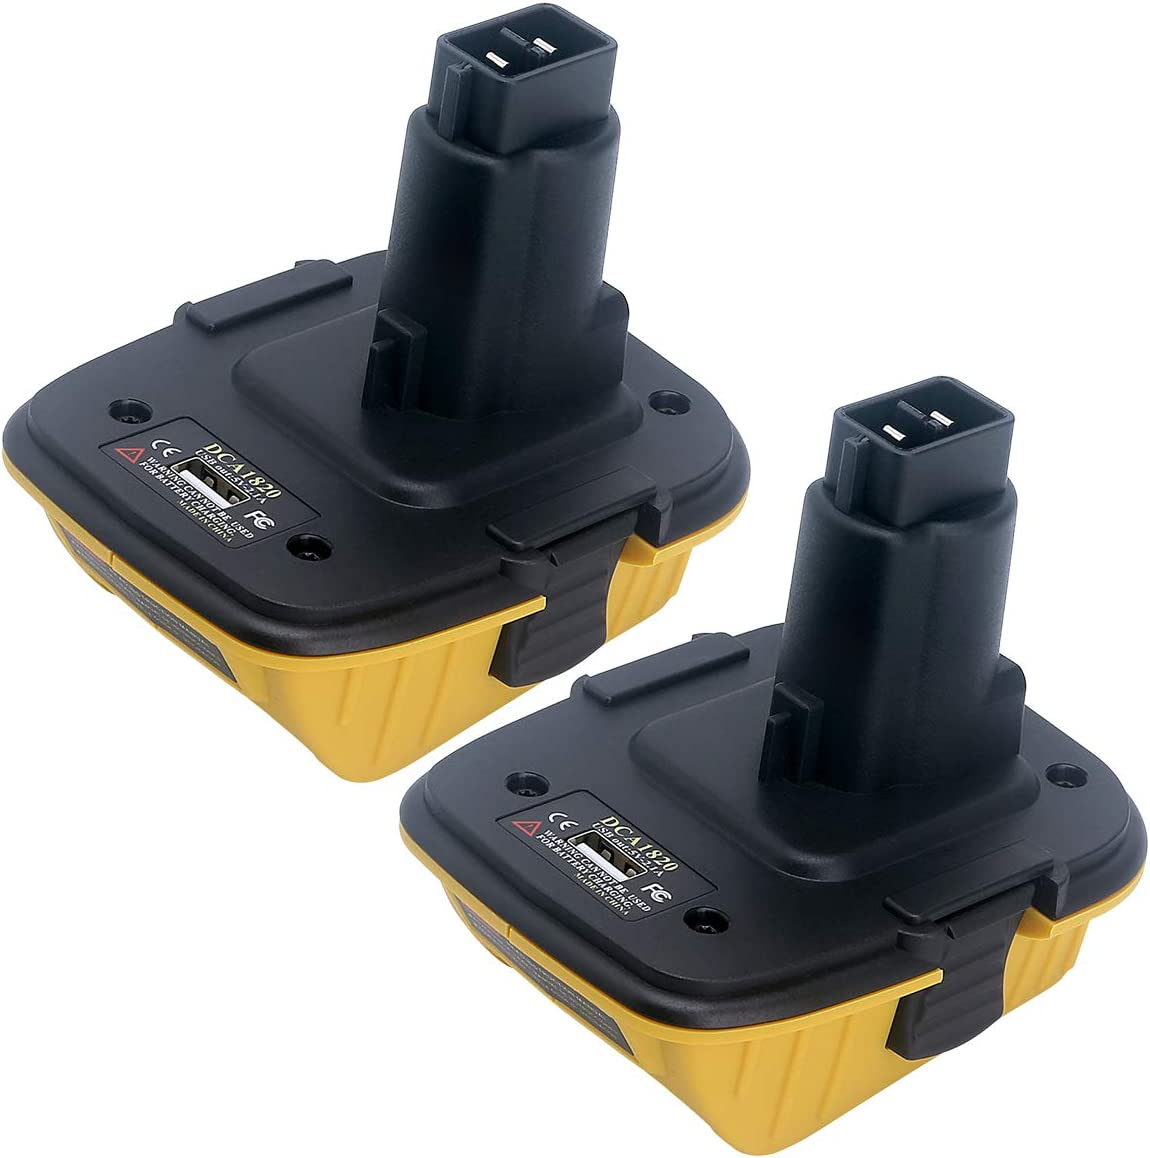 Biswaye 2-Pack Replacement 20V Dewalt Battery Adapter DCA1820 for Dewalt 18V Tools, Convert Dewalt 20V Battery DCB205 DCB201 DCB609 for Dewalt 18V Battery DC9096 DC9098 DW9096 DW9099 with USB Port